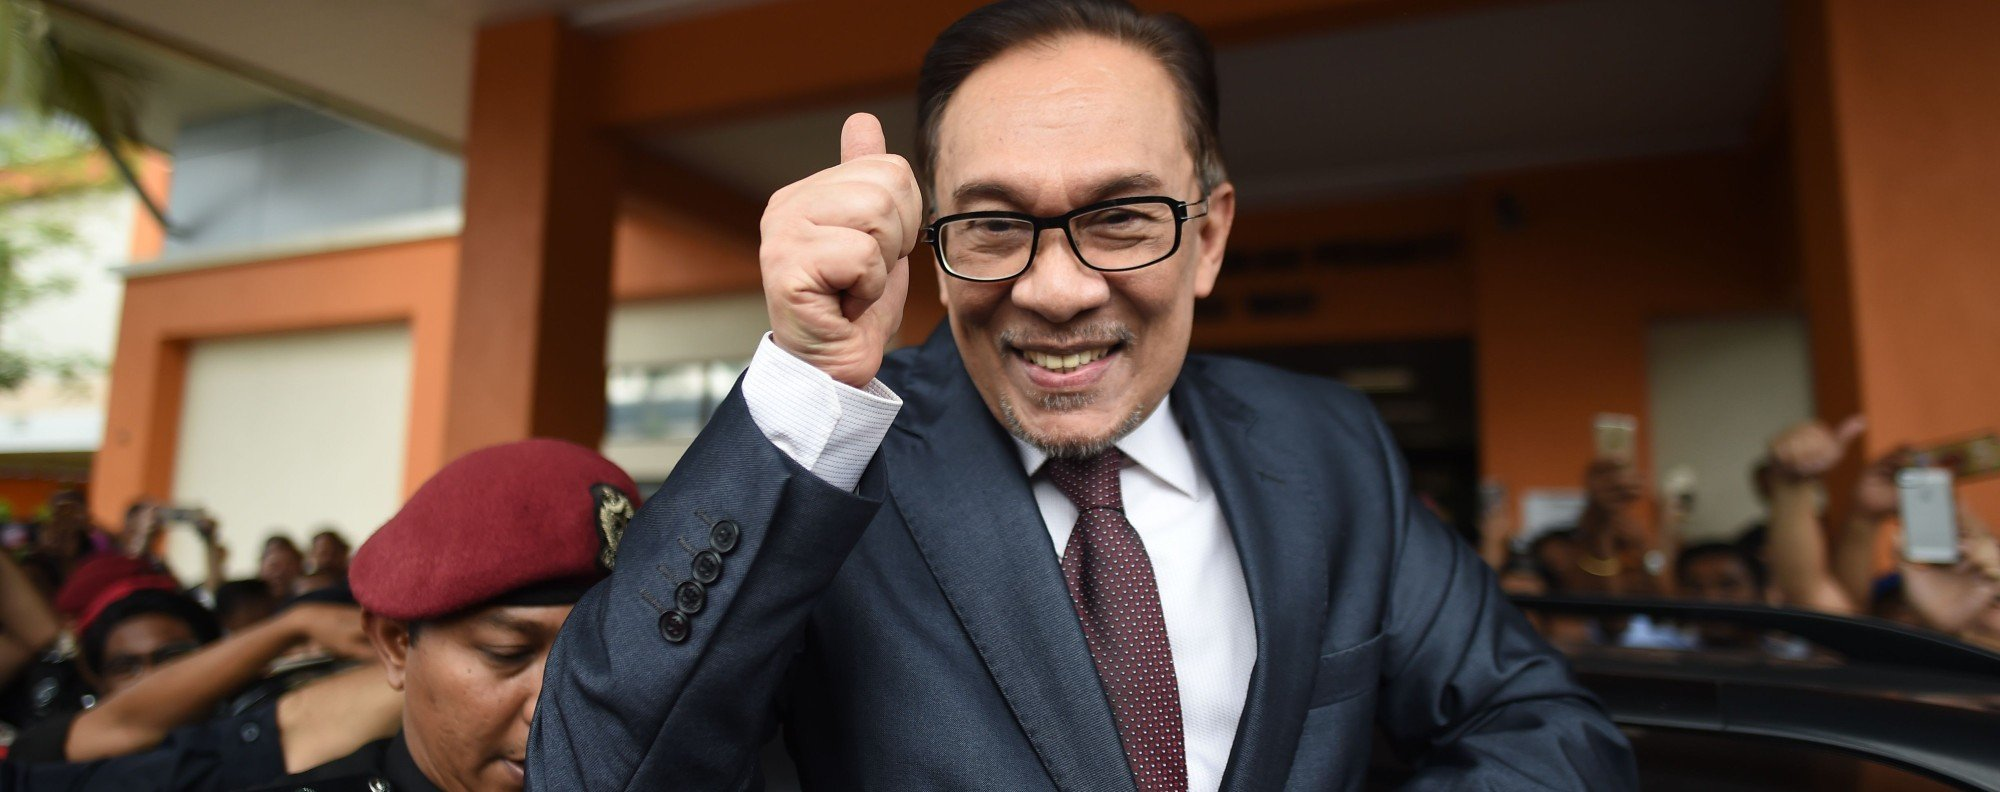 Anwar Ibrahim after his release in Kuala Lumpur. Photo: AFP